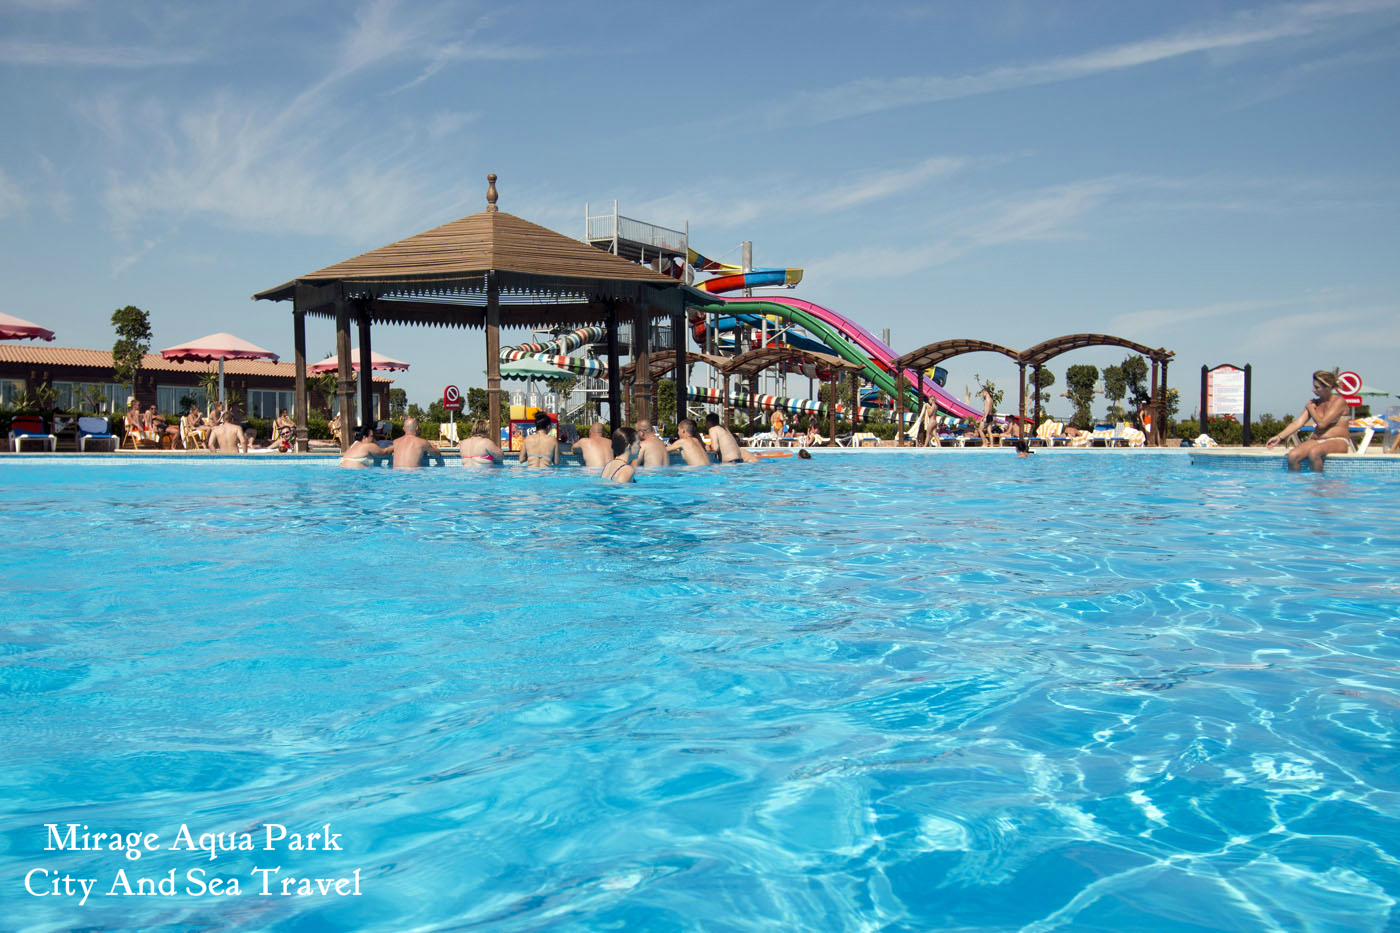 mirage-aqua-park-hurghada-hotel-and-resort-city-and-sea-travel-003-%d9%85%d9%8a%d8%b1%d8%a7%d8%ac-%d8%a7%d9%83%d9%88%d8%a7-%d8%a8%d8%a7%d8%b1%d9%83-%d9%81%d9%86%d8%af%d9%82-%d9%85%d9%86%d8%aa%d8%ac